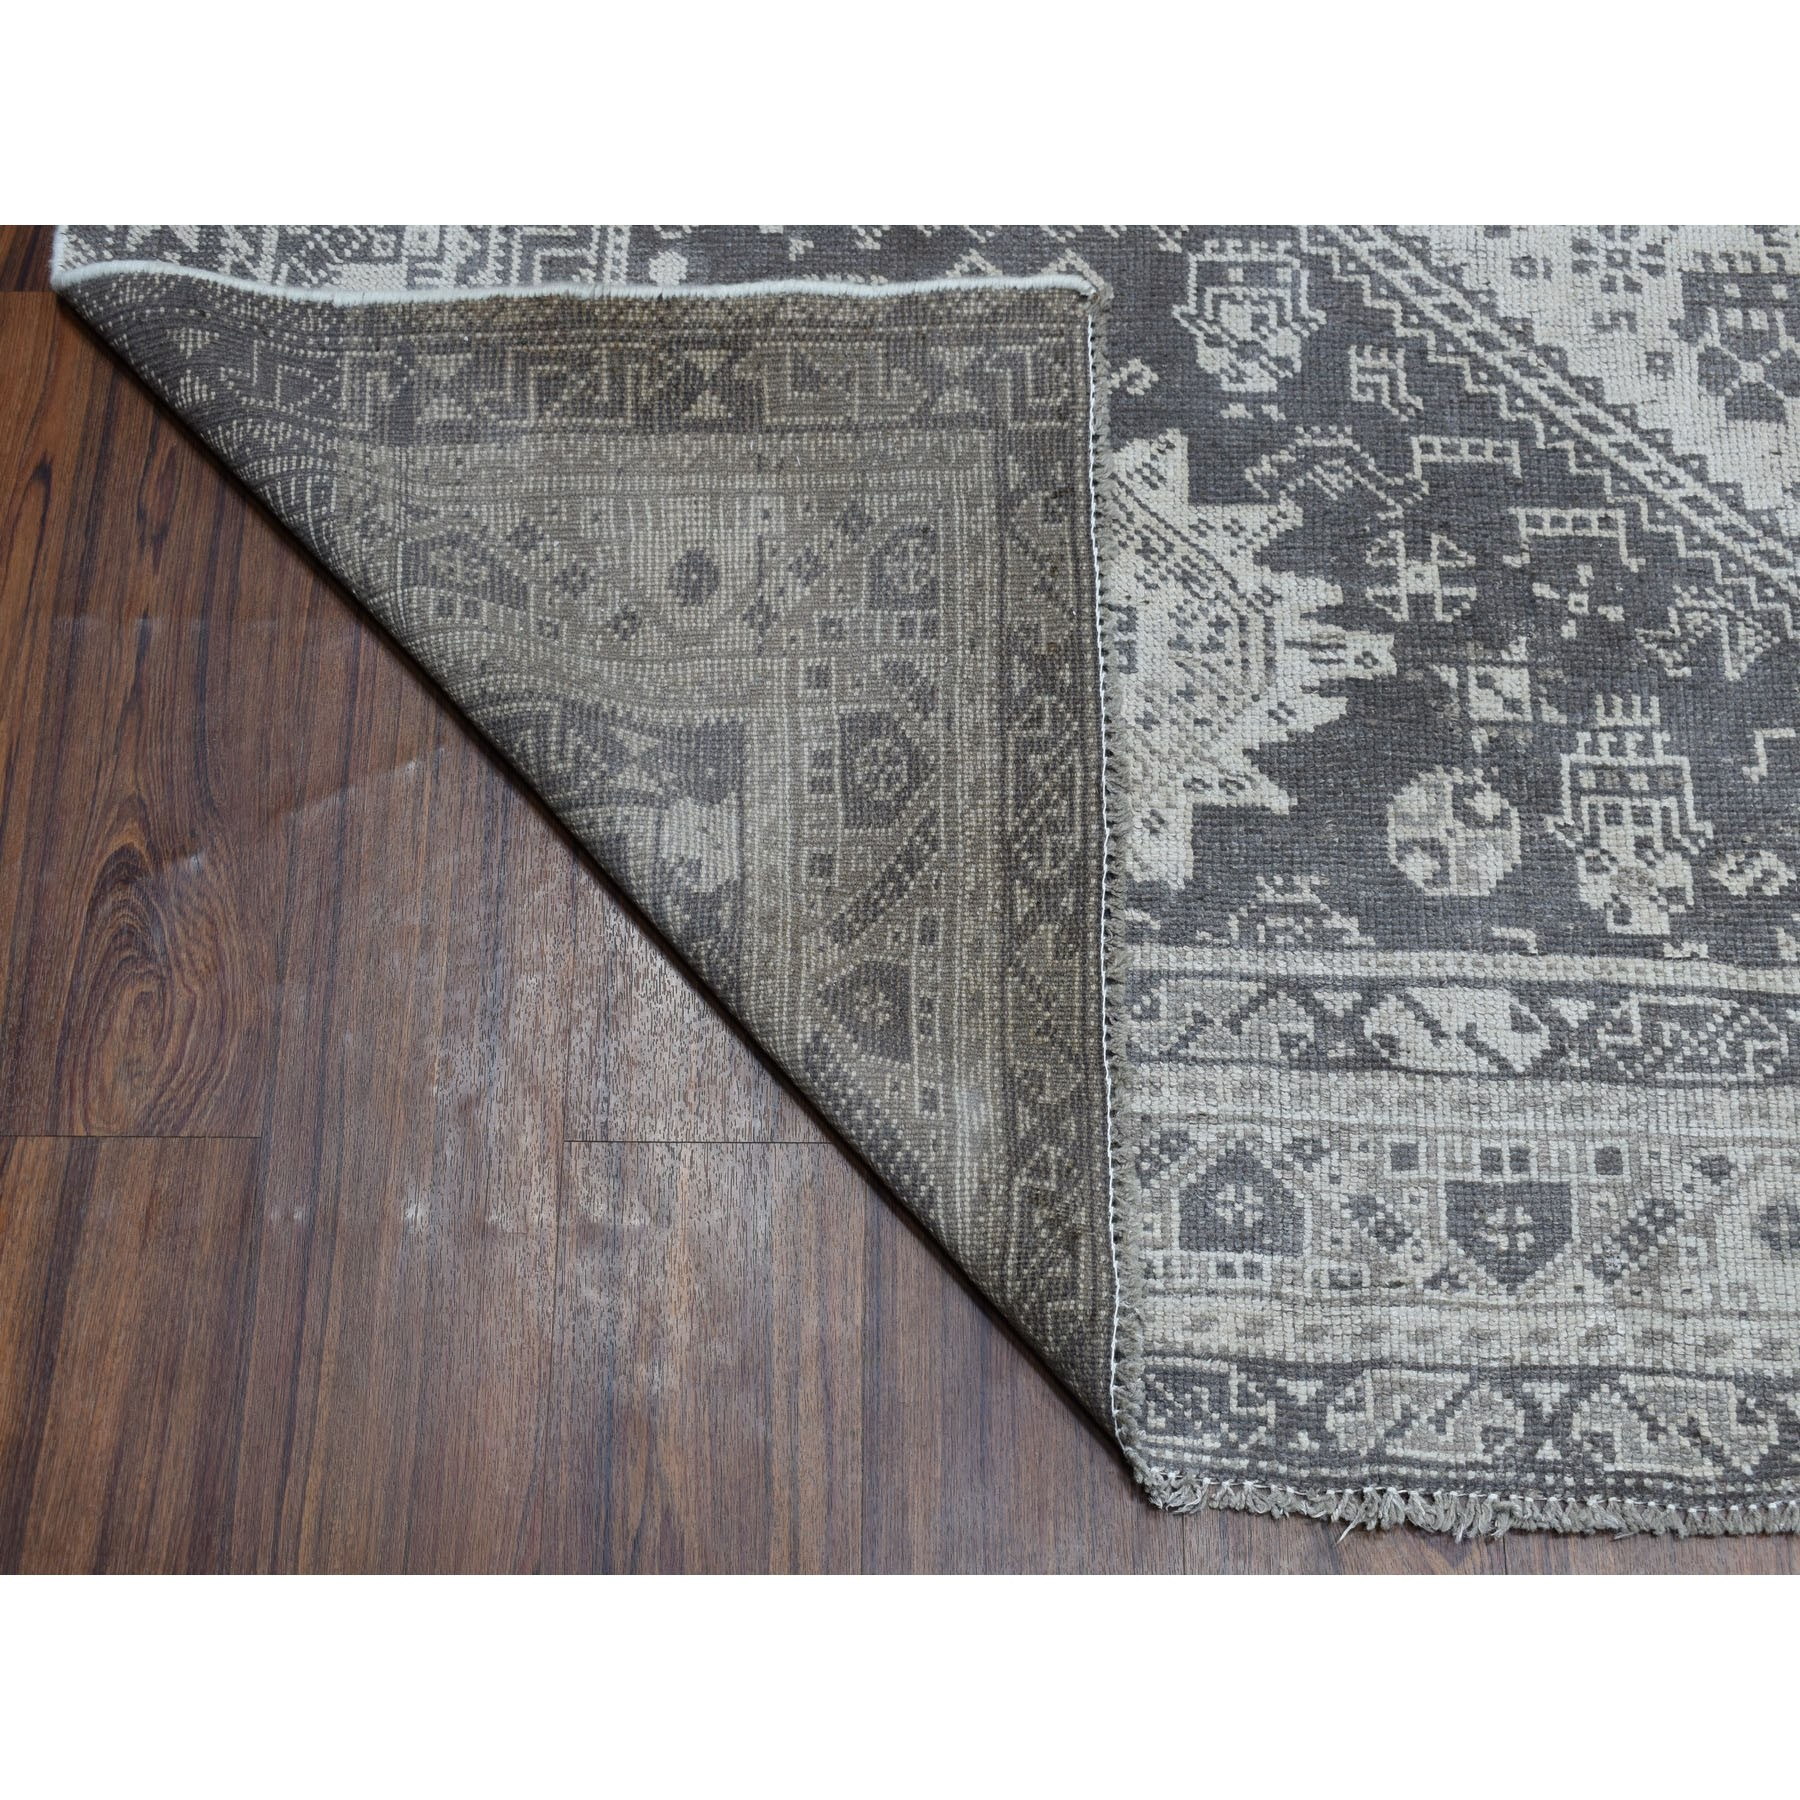 7-2 x9-6  Vintage And Worn Down Distressed Colors Persian Shiraz Hand Knotted Bohemian Rug